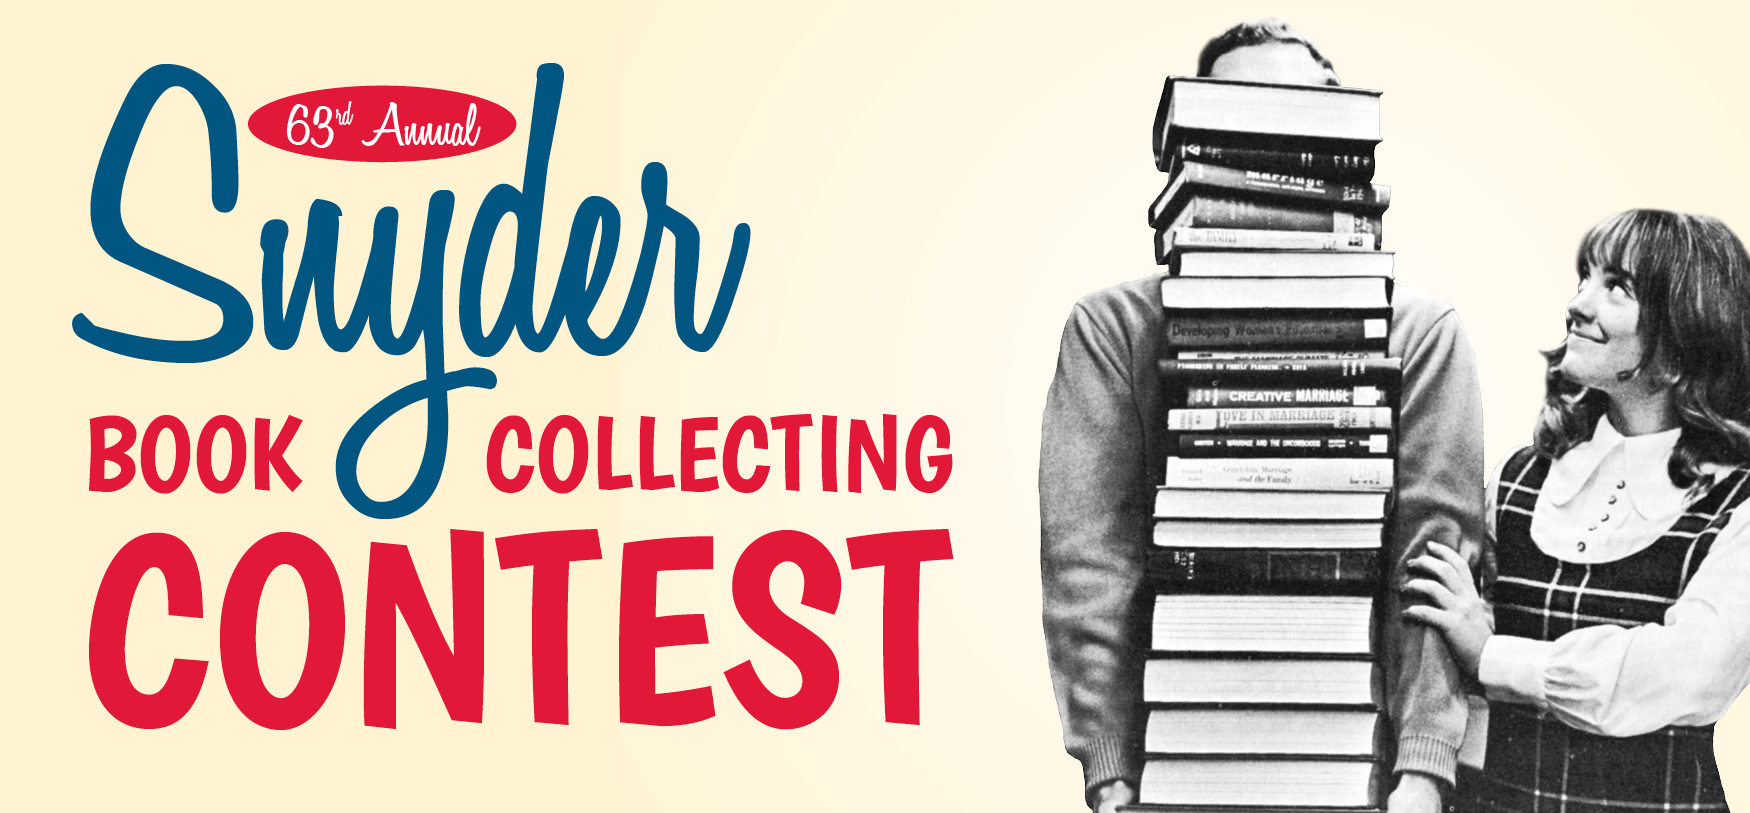 63rd Annual Snyder Book Collecting Contest (display banner)